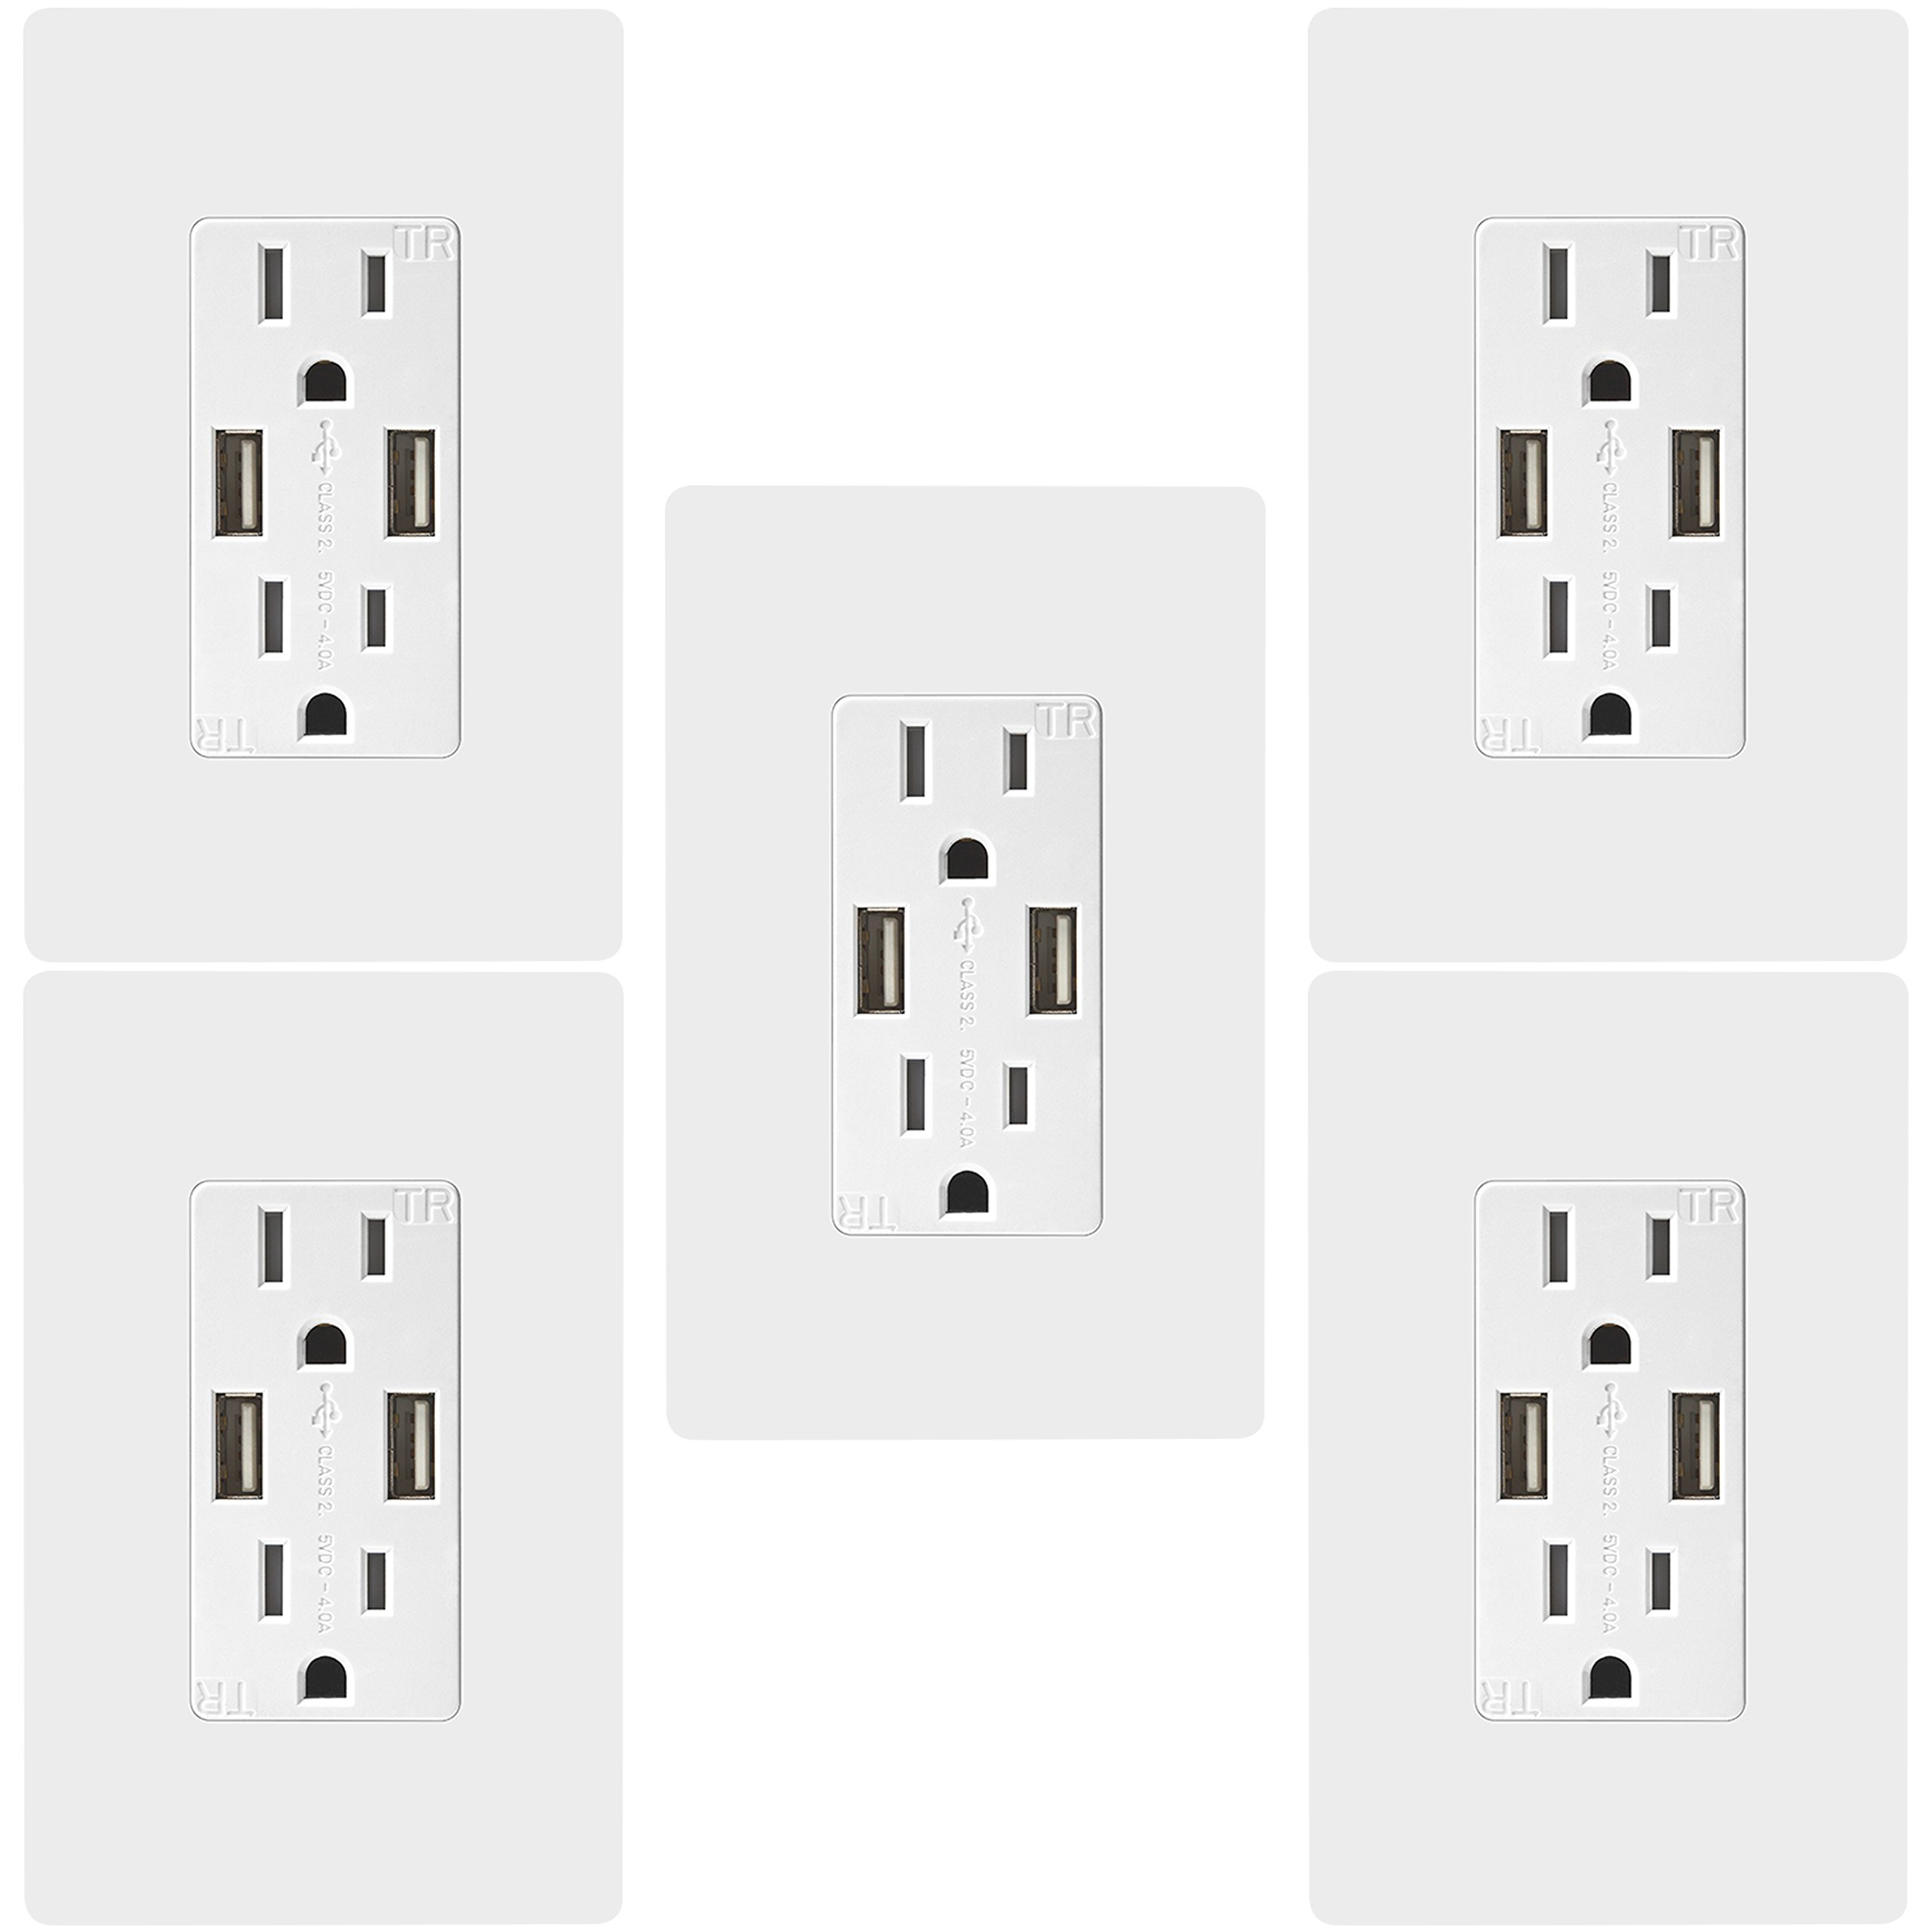 TOPGREENER TU2154A 4A High Speed USB Charger Receptacle 15A Tamper-Resistant Outlet, 5-Pack White